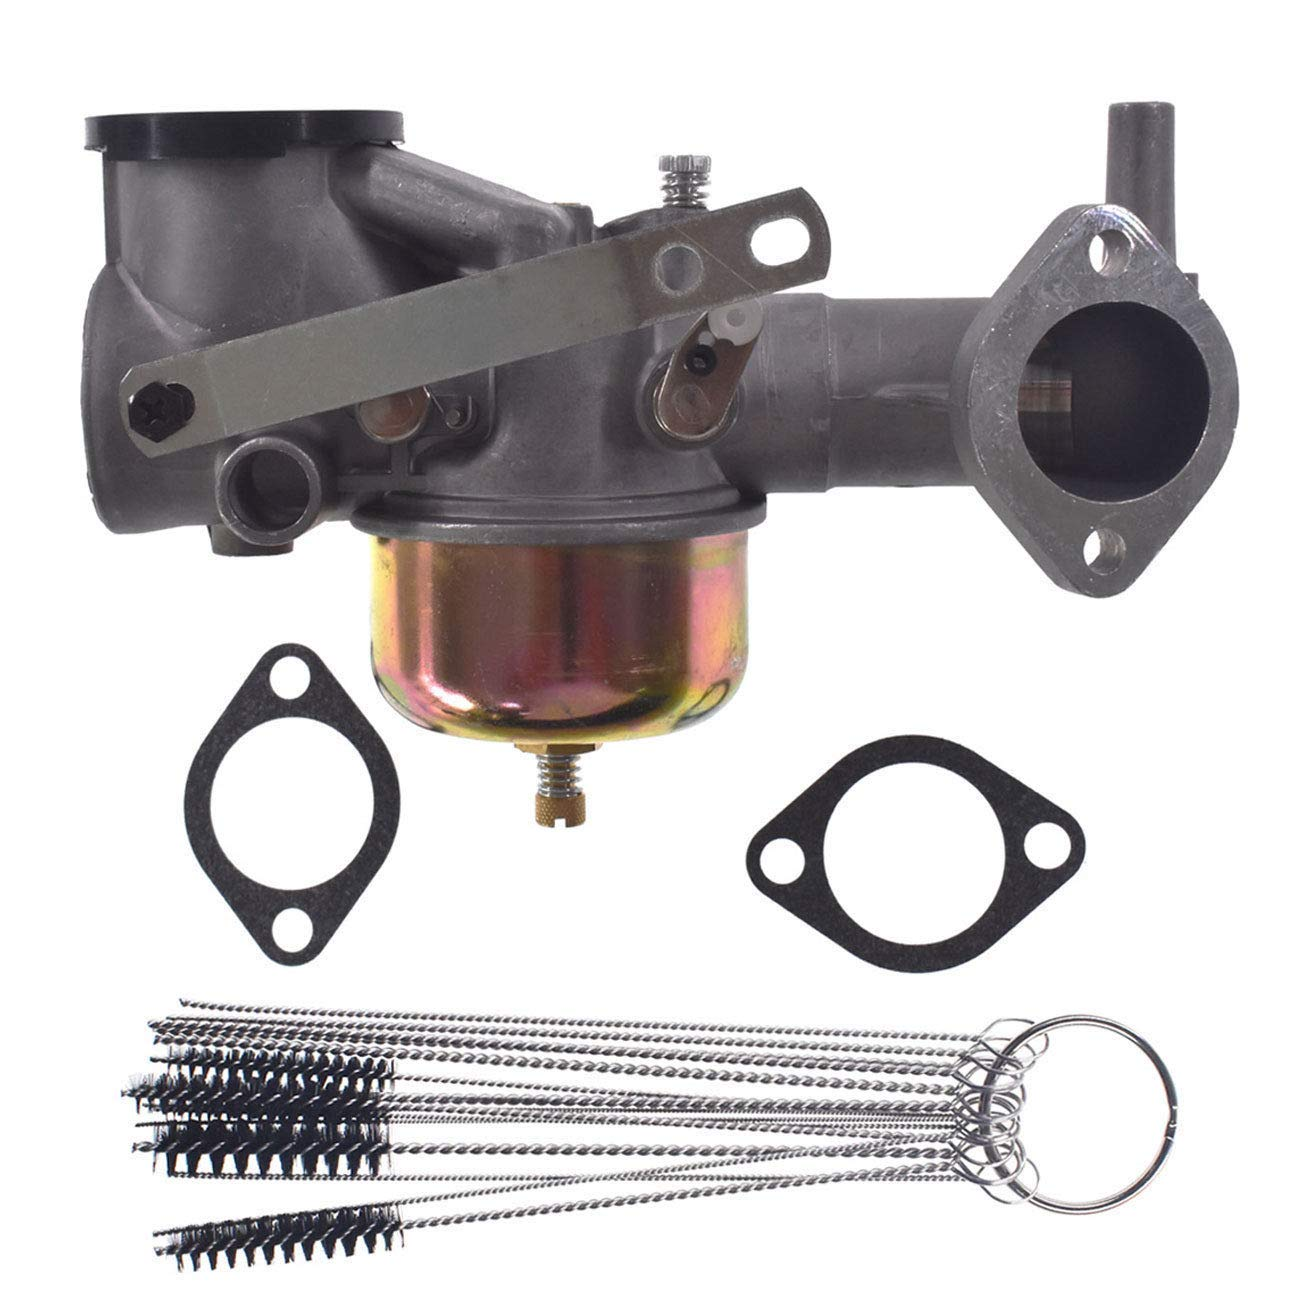 Euros Carburetor with Cleaning Tool for Briggs & Stratton 390811 392152 491590 Lawnmower